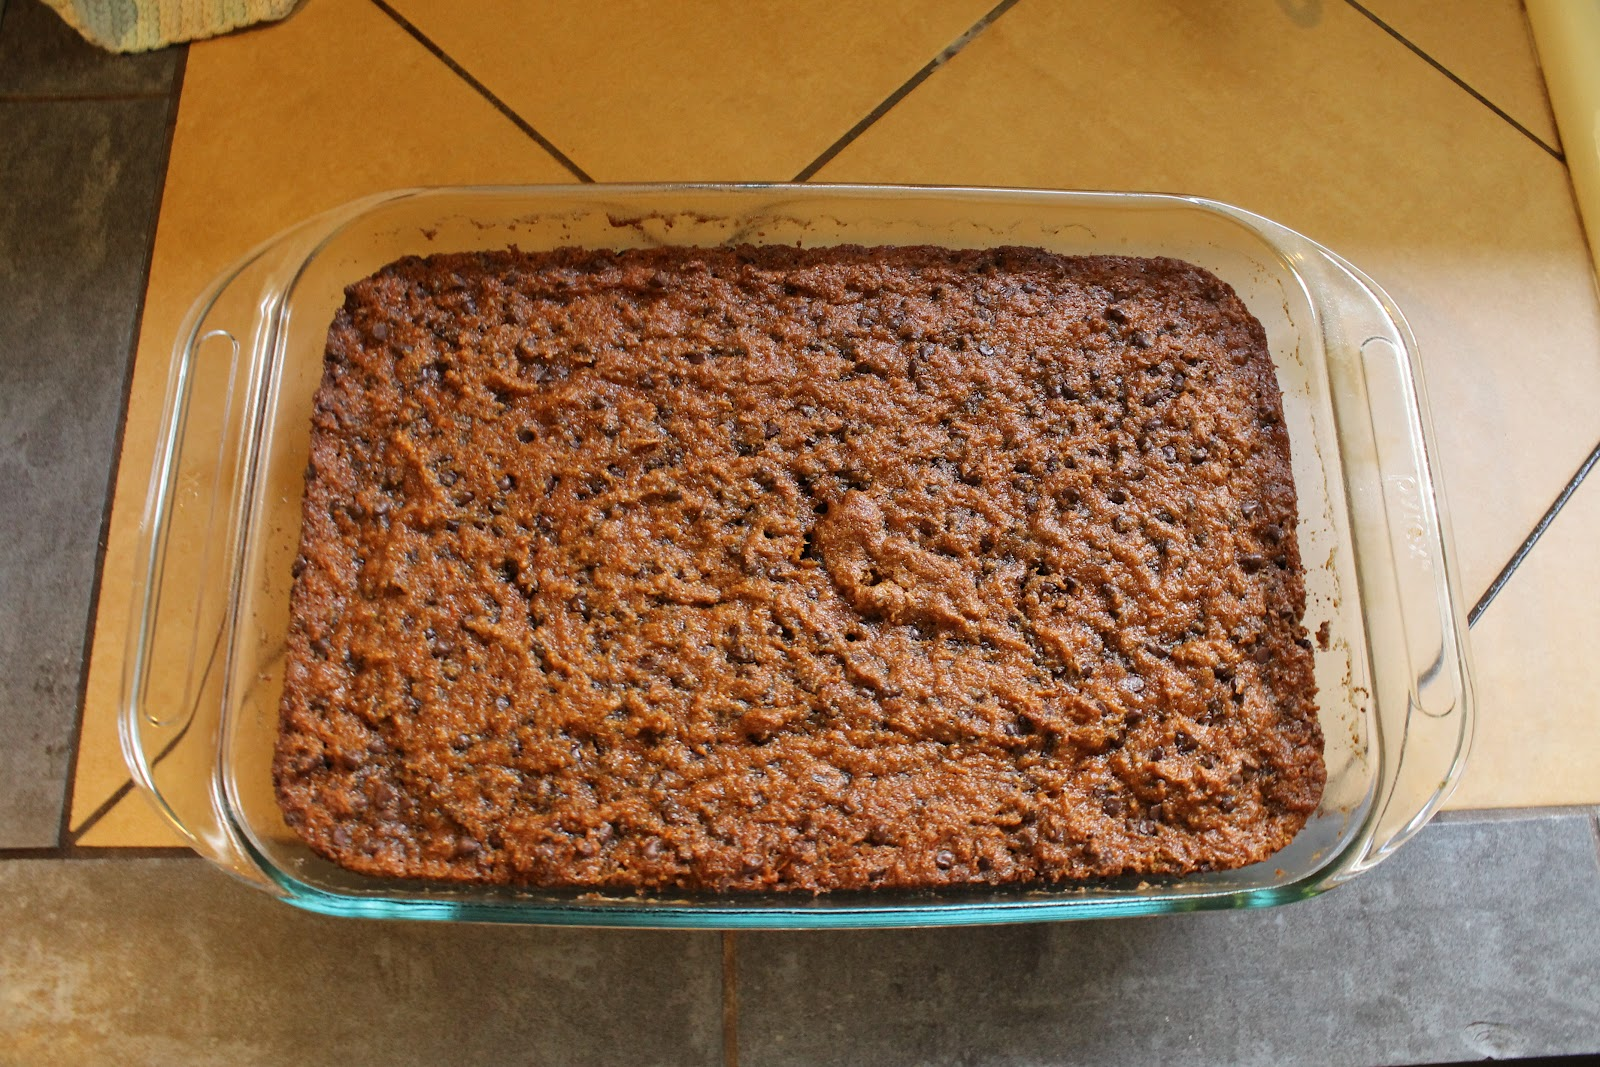 Crown Hill Chocolate Chip Carrot Cake